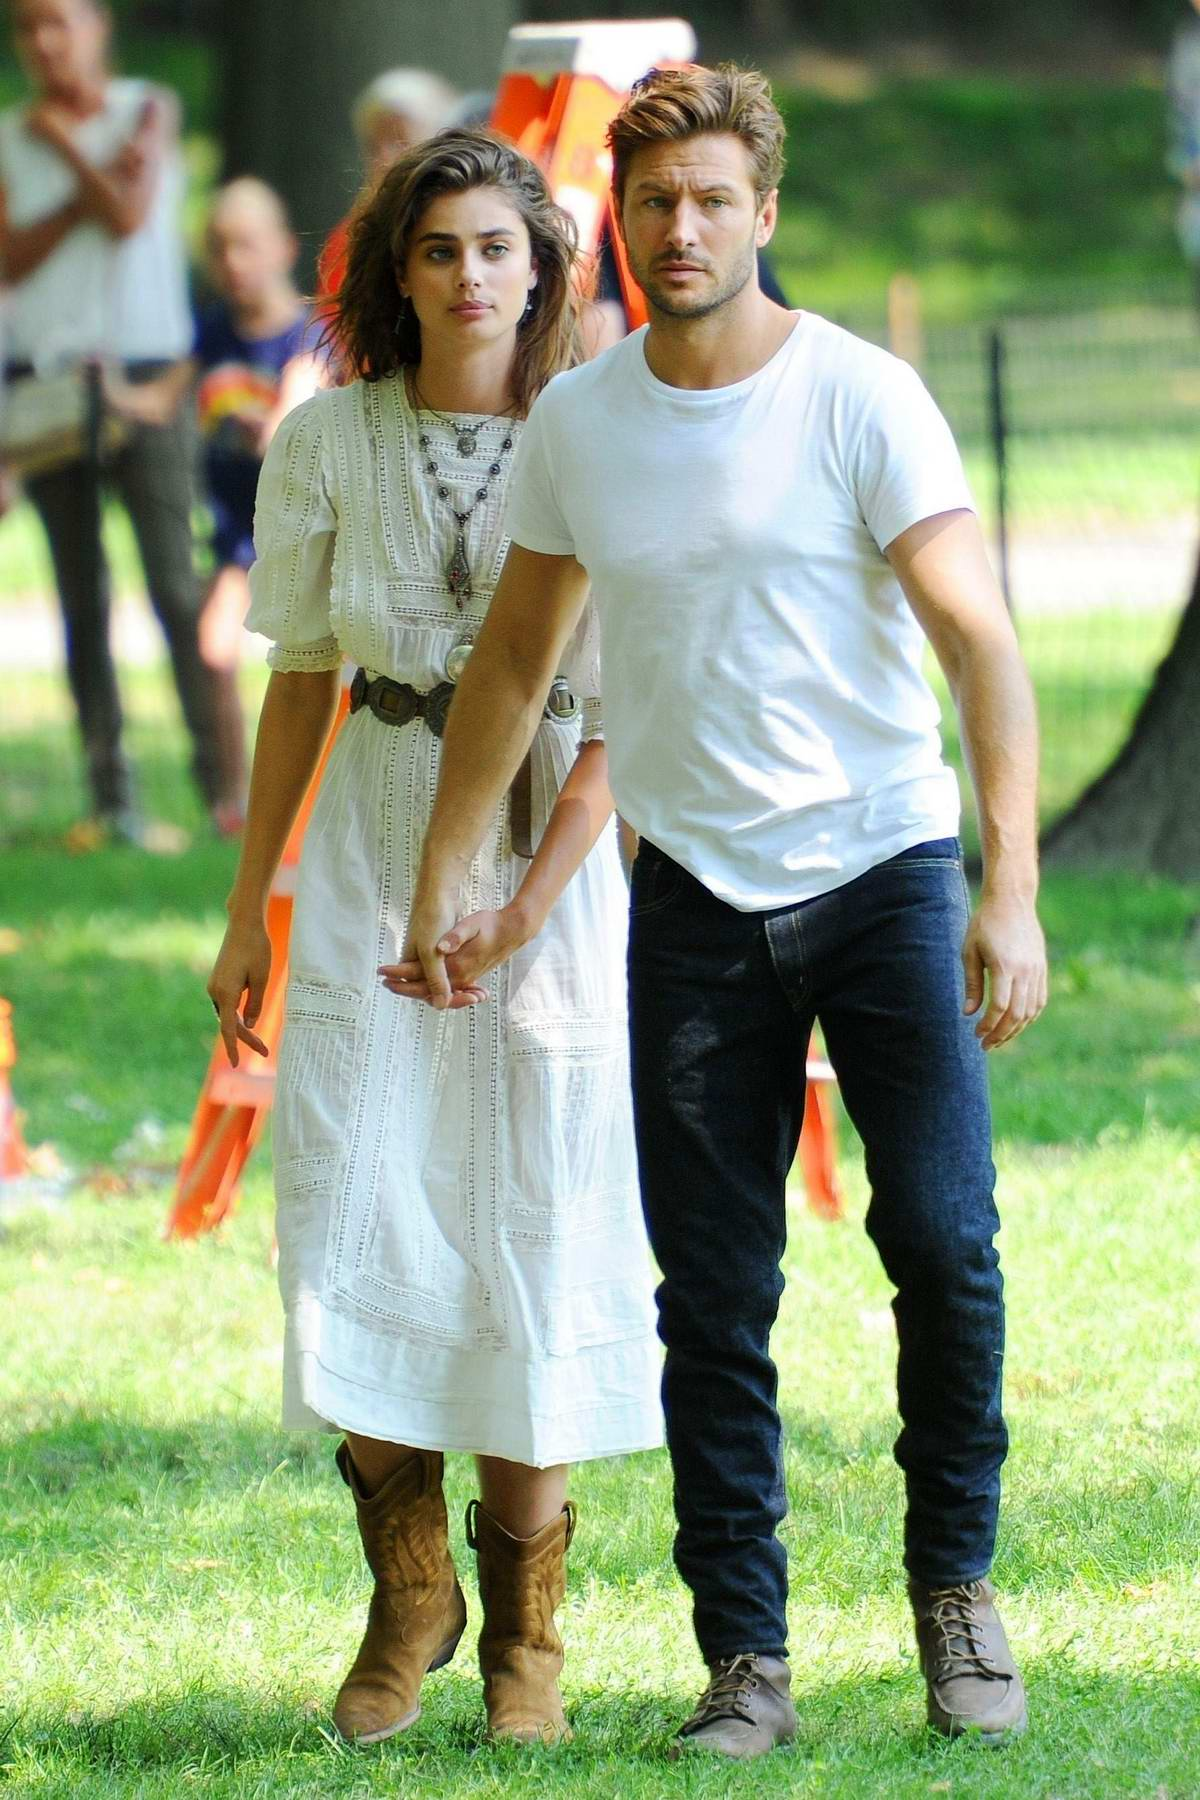 Taylor Hill and boyfriend Michael Stephen Shank spotted while filming a perfume commercial in Central Park, New York City